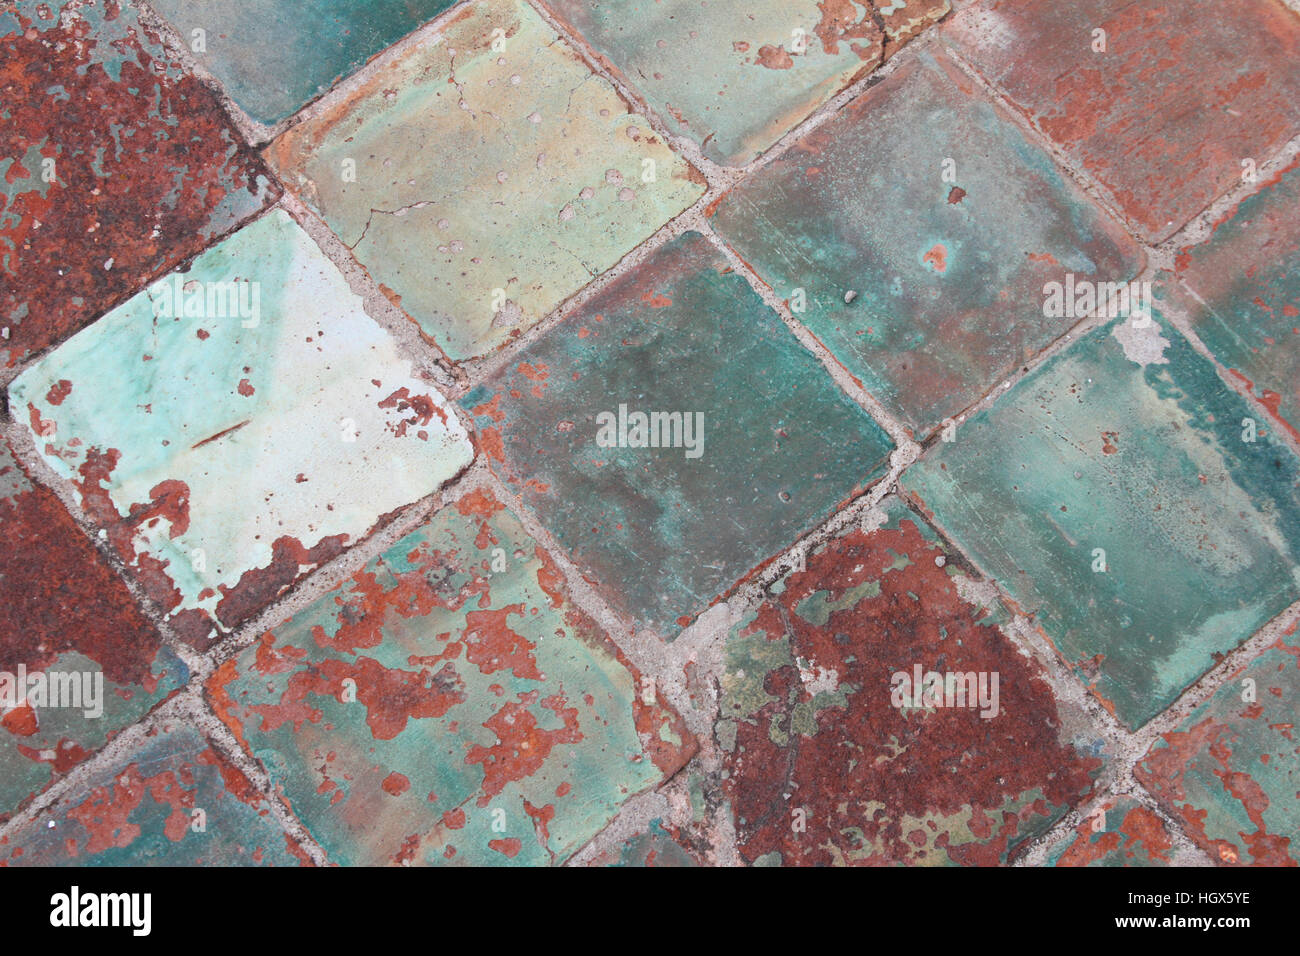 Antique ceramic tile church floor with turquoise green colored antique ceramic tile church floor with turquoise green colored tile dailygadgetfo Choice Image